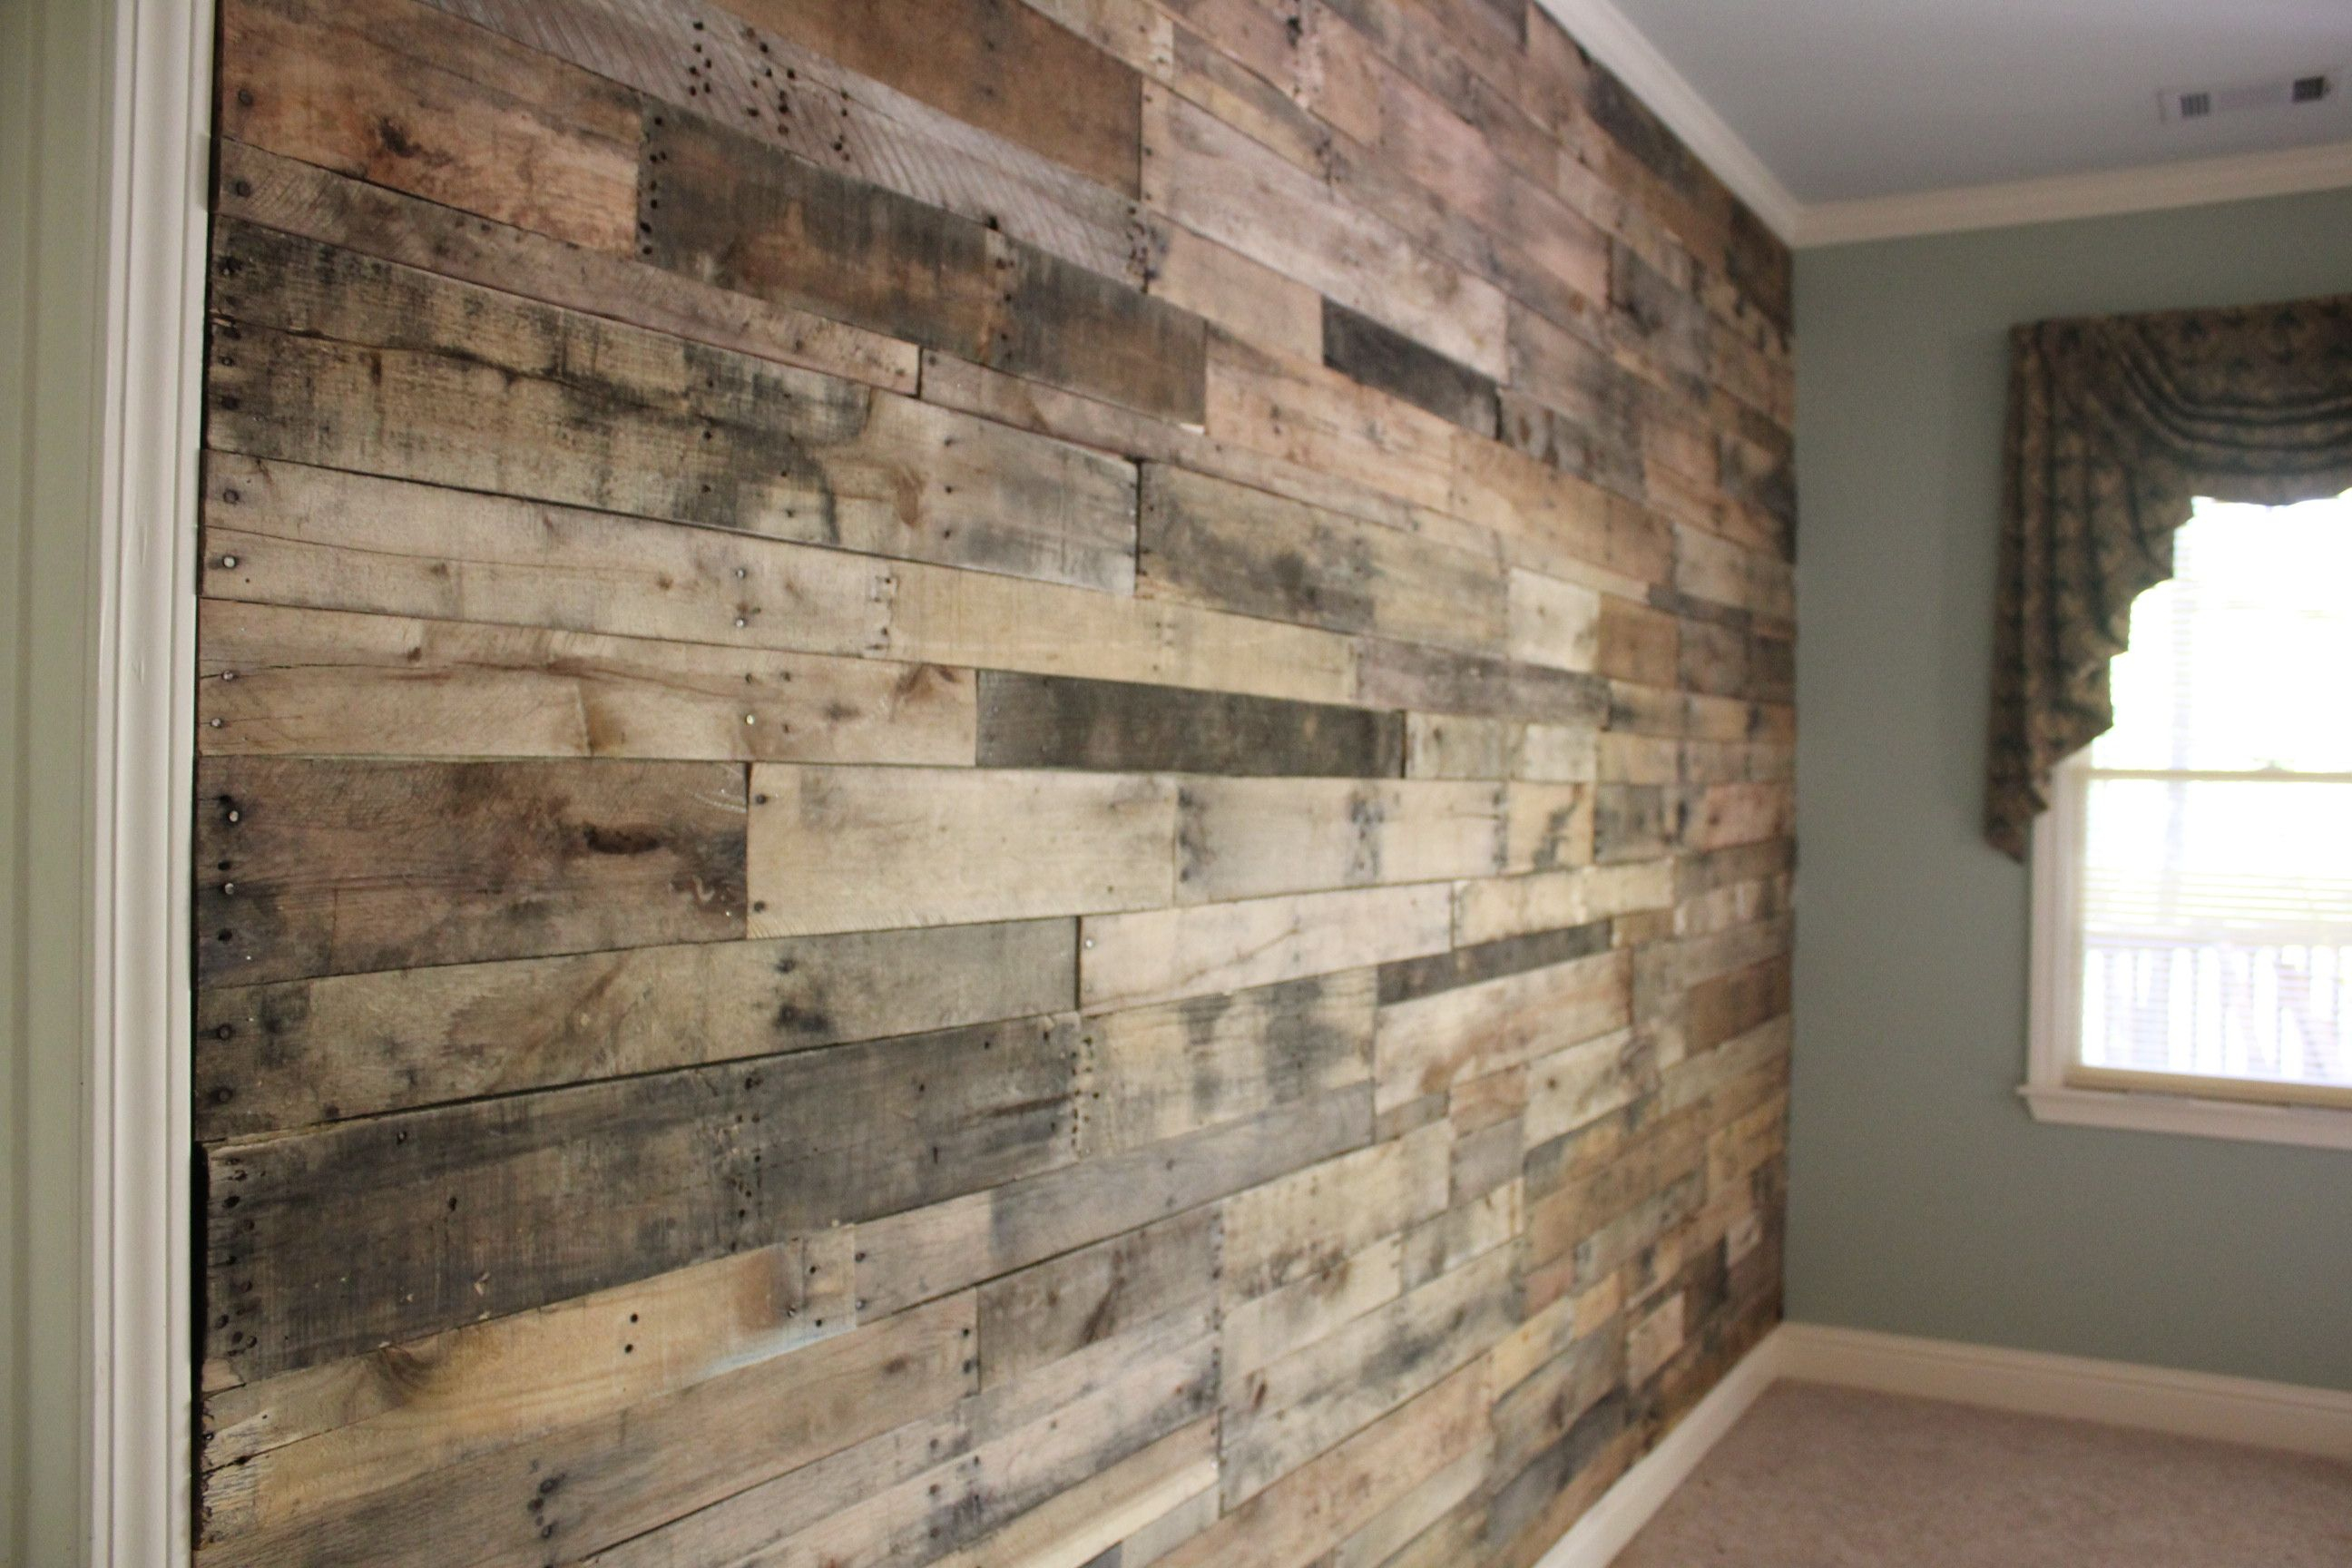 Today I D Like To Pay Your Attention To Wood Accent Walls Which Are Rather Easy To Install Yourself And Wooden Accent Wall Pallet Accent Wall Wood Accent Wall